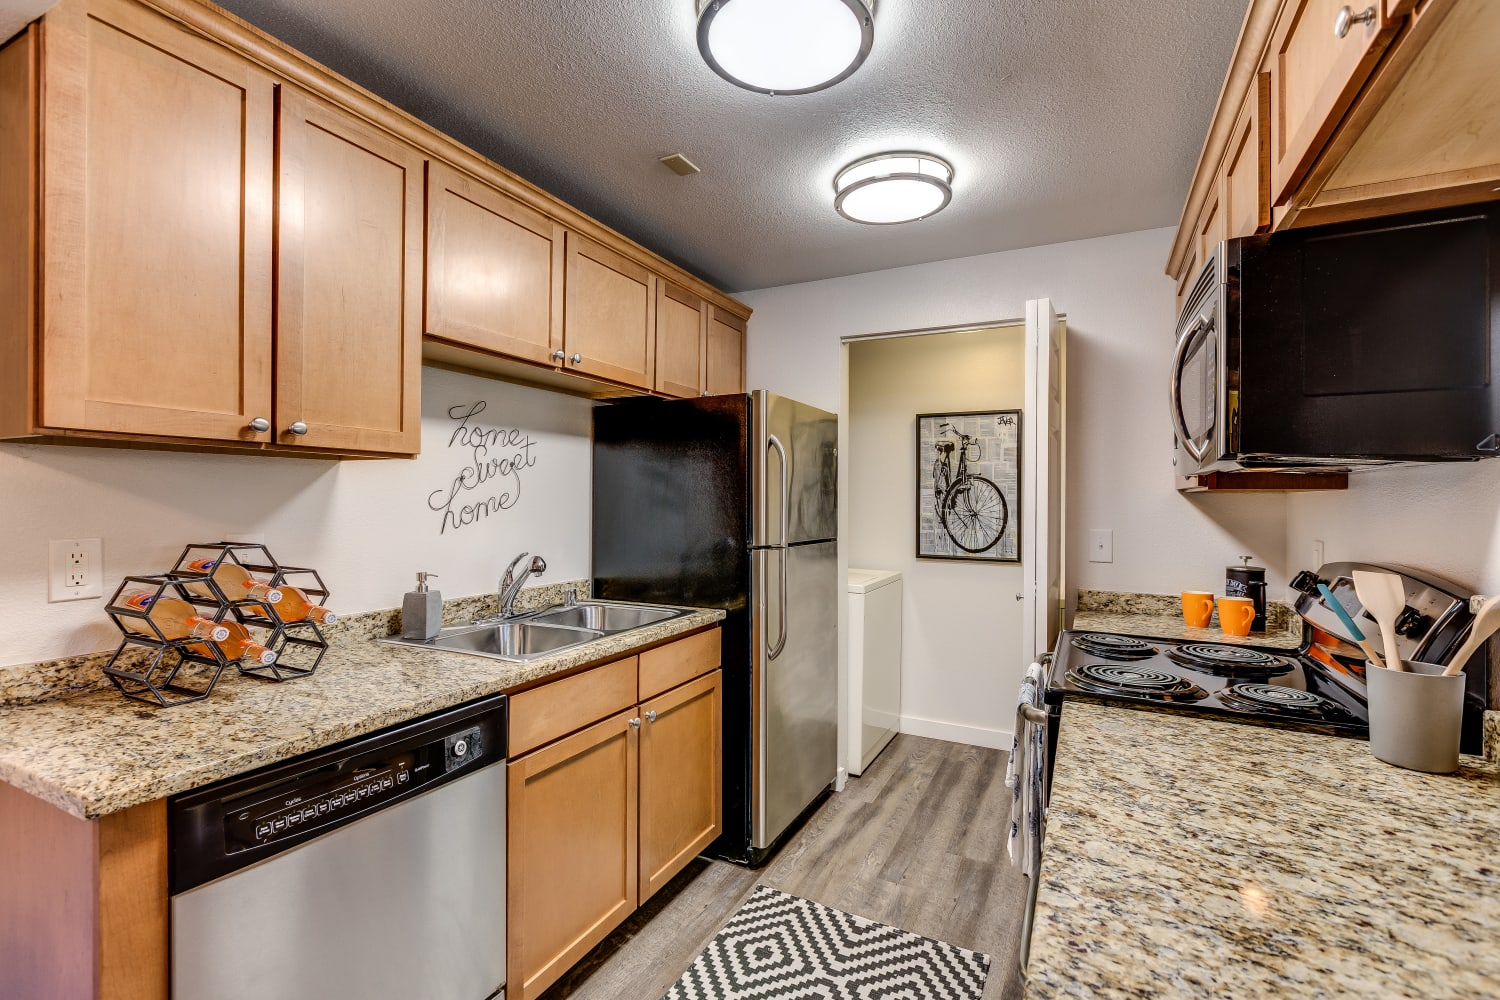 Updated kitchen at The Preserve at Forbes Creek in Kirkland, Washington